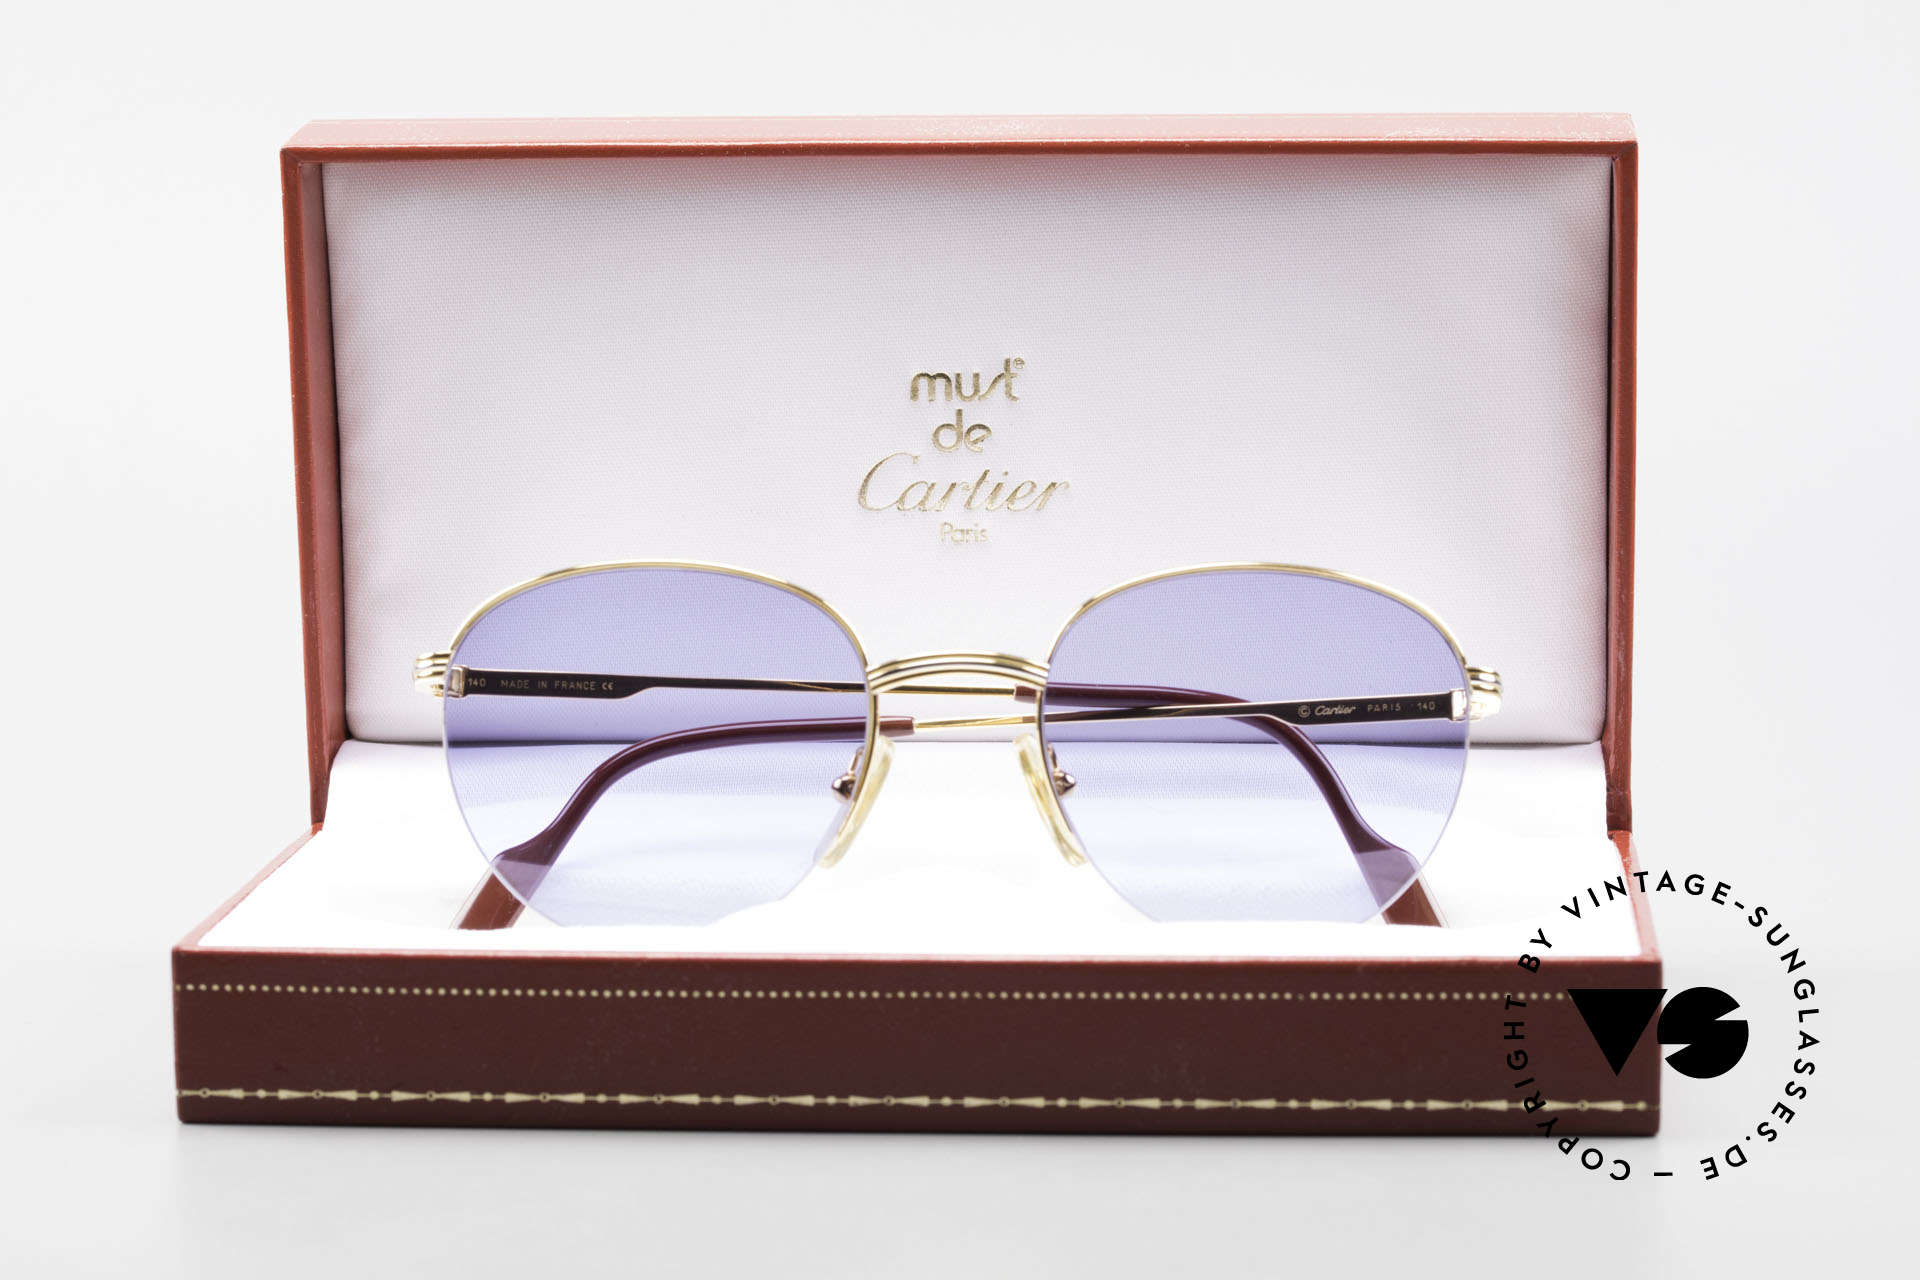 Cartier Colisee Round Luxury Sunglasses 90's, NO retro sunglasses; an old original from app. 1995!, Made for Men and Women